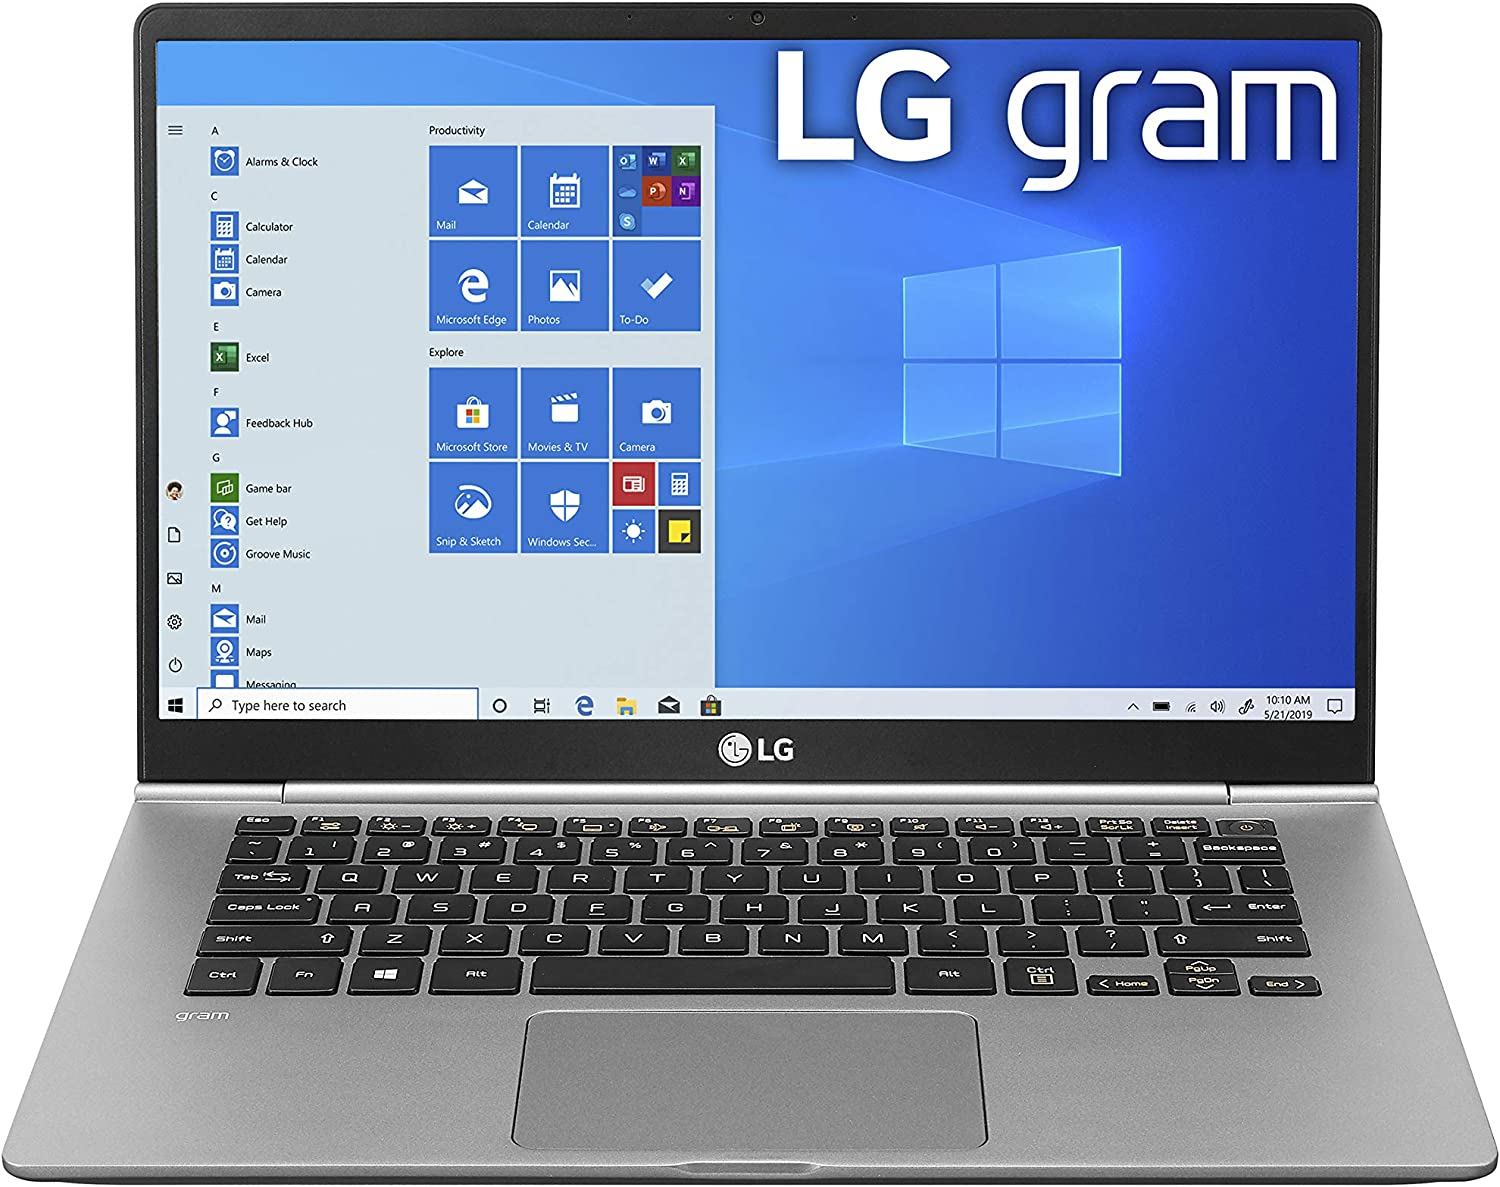 8 Best Laptops For Seniors 2021 [Easy-to-Use & Durable Options]